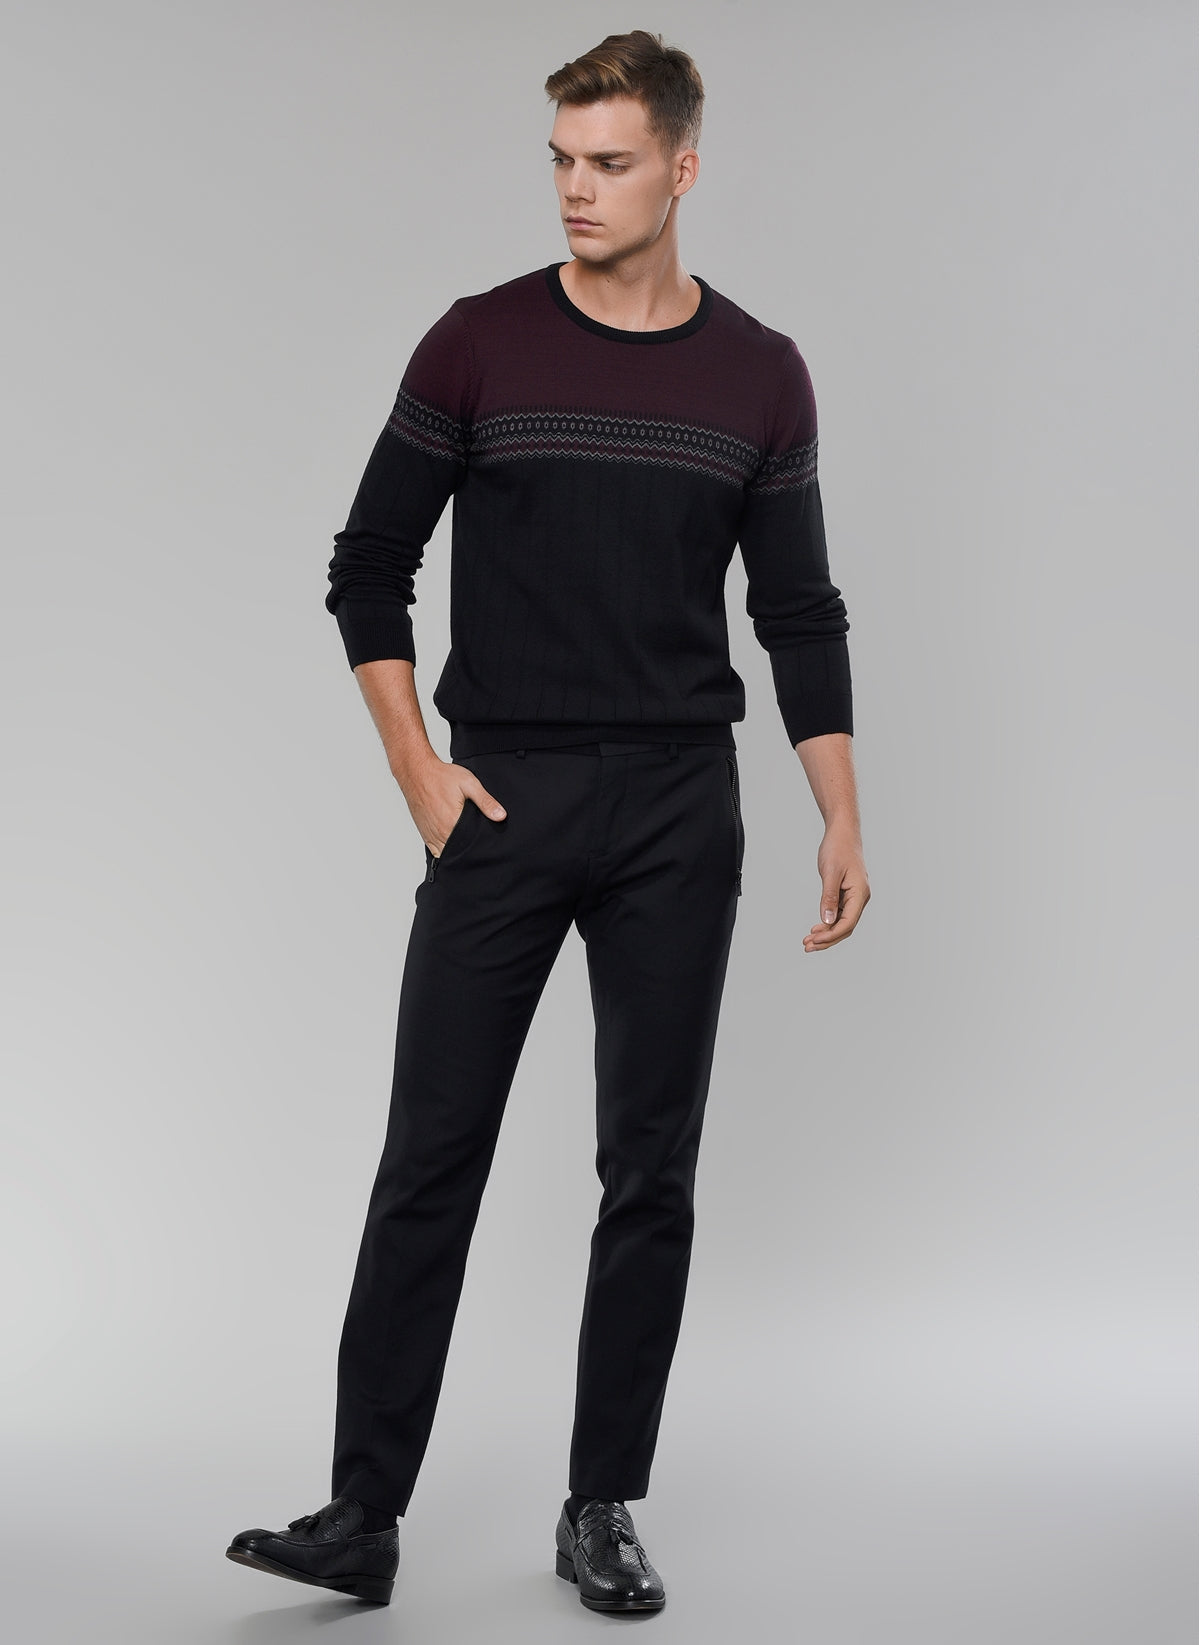 Jacquard Crew Neck Sweater